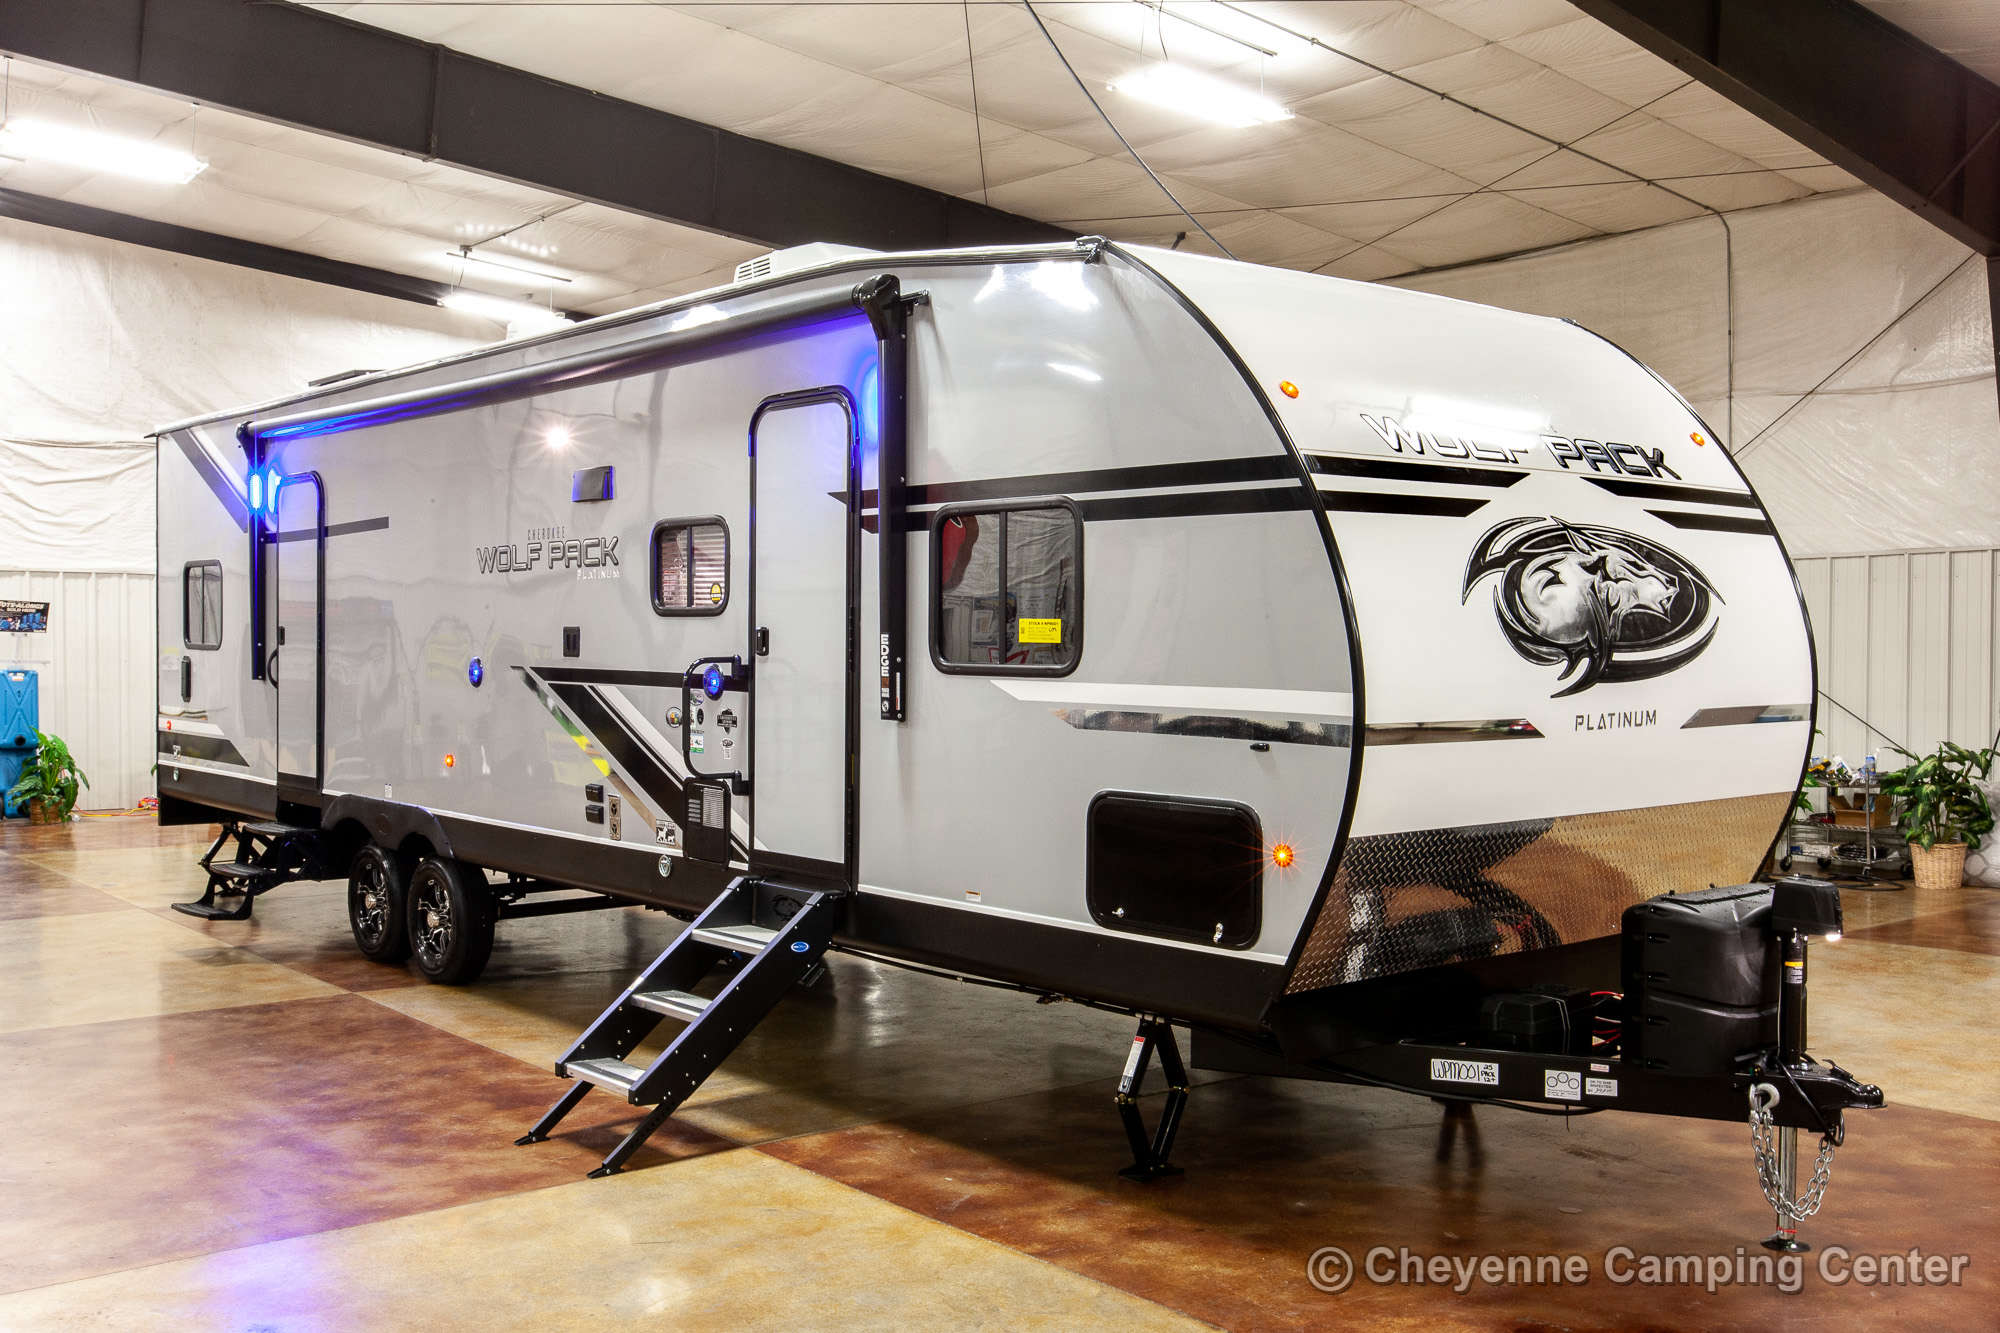 2021 Forest River Cherokee Wolf Pack 25PACK12 Bunkhouse Toy Hauler Travel Trailer